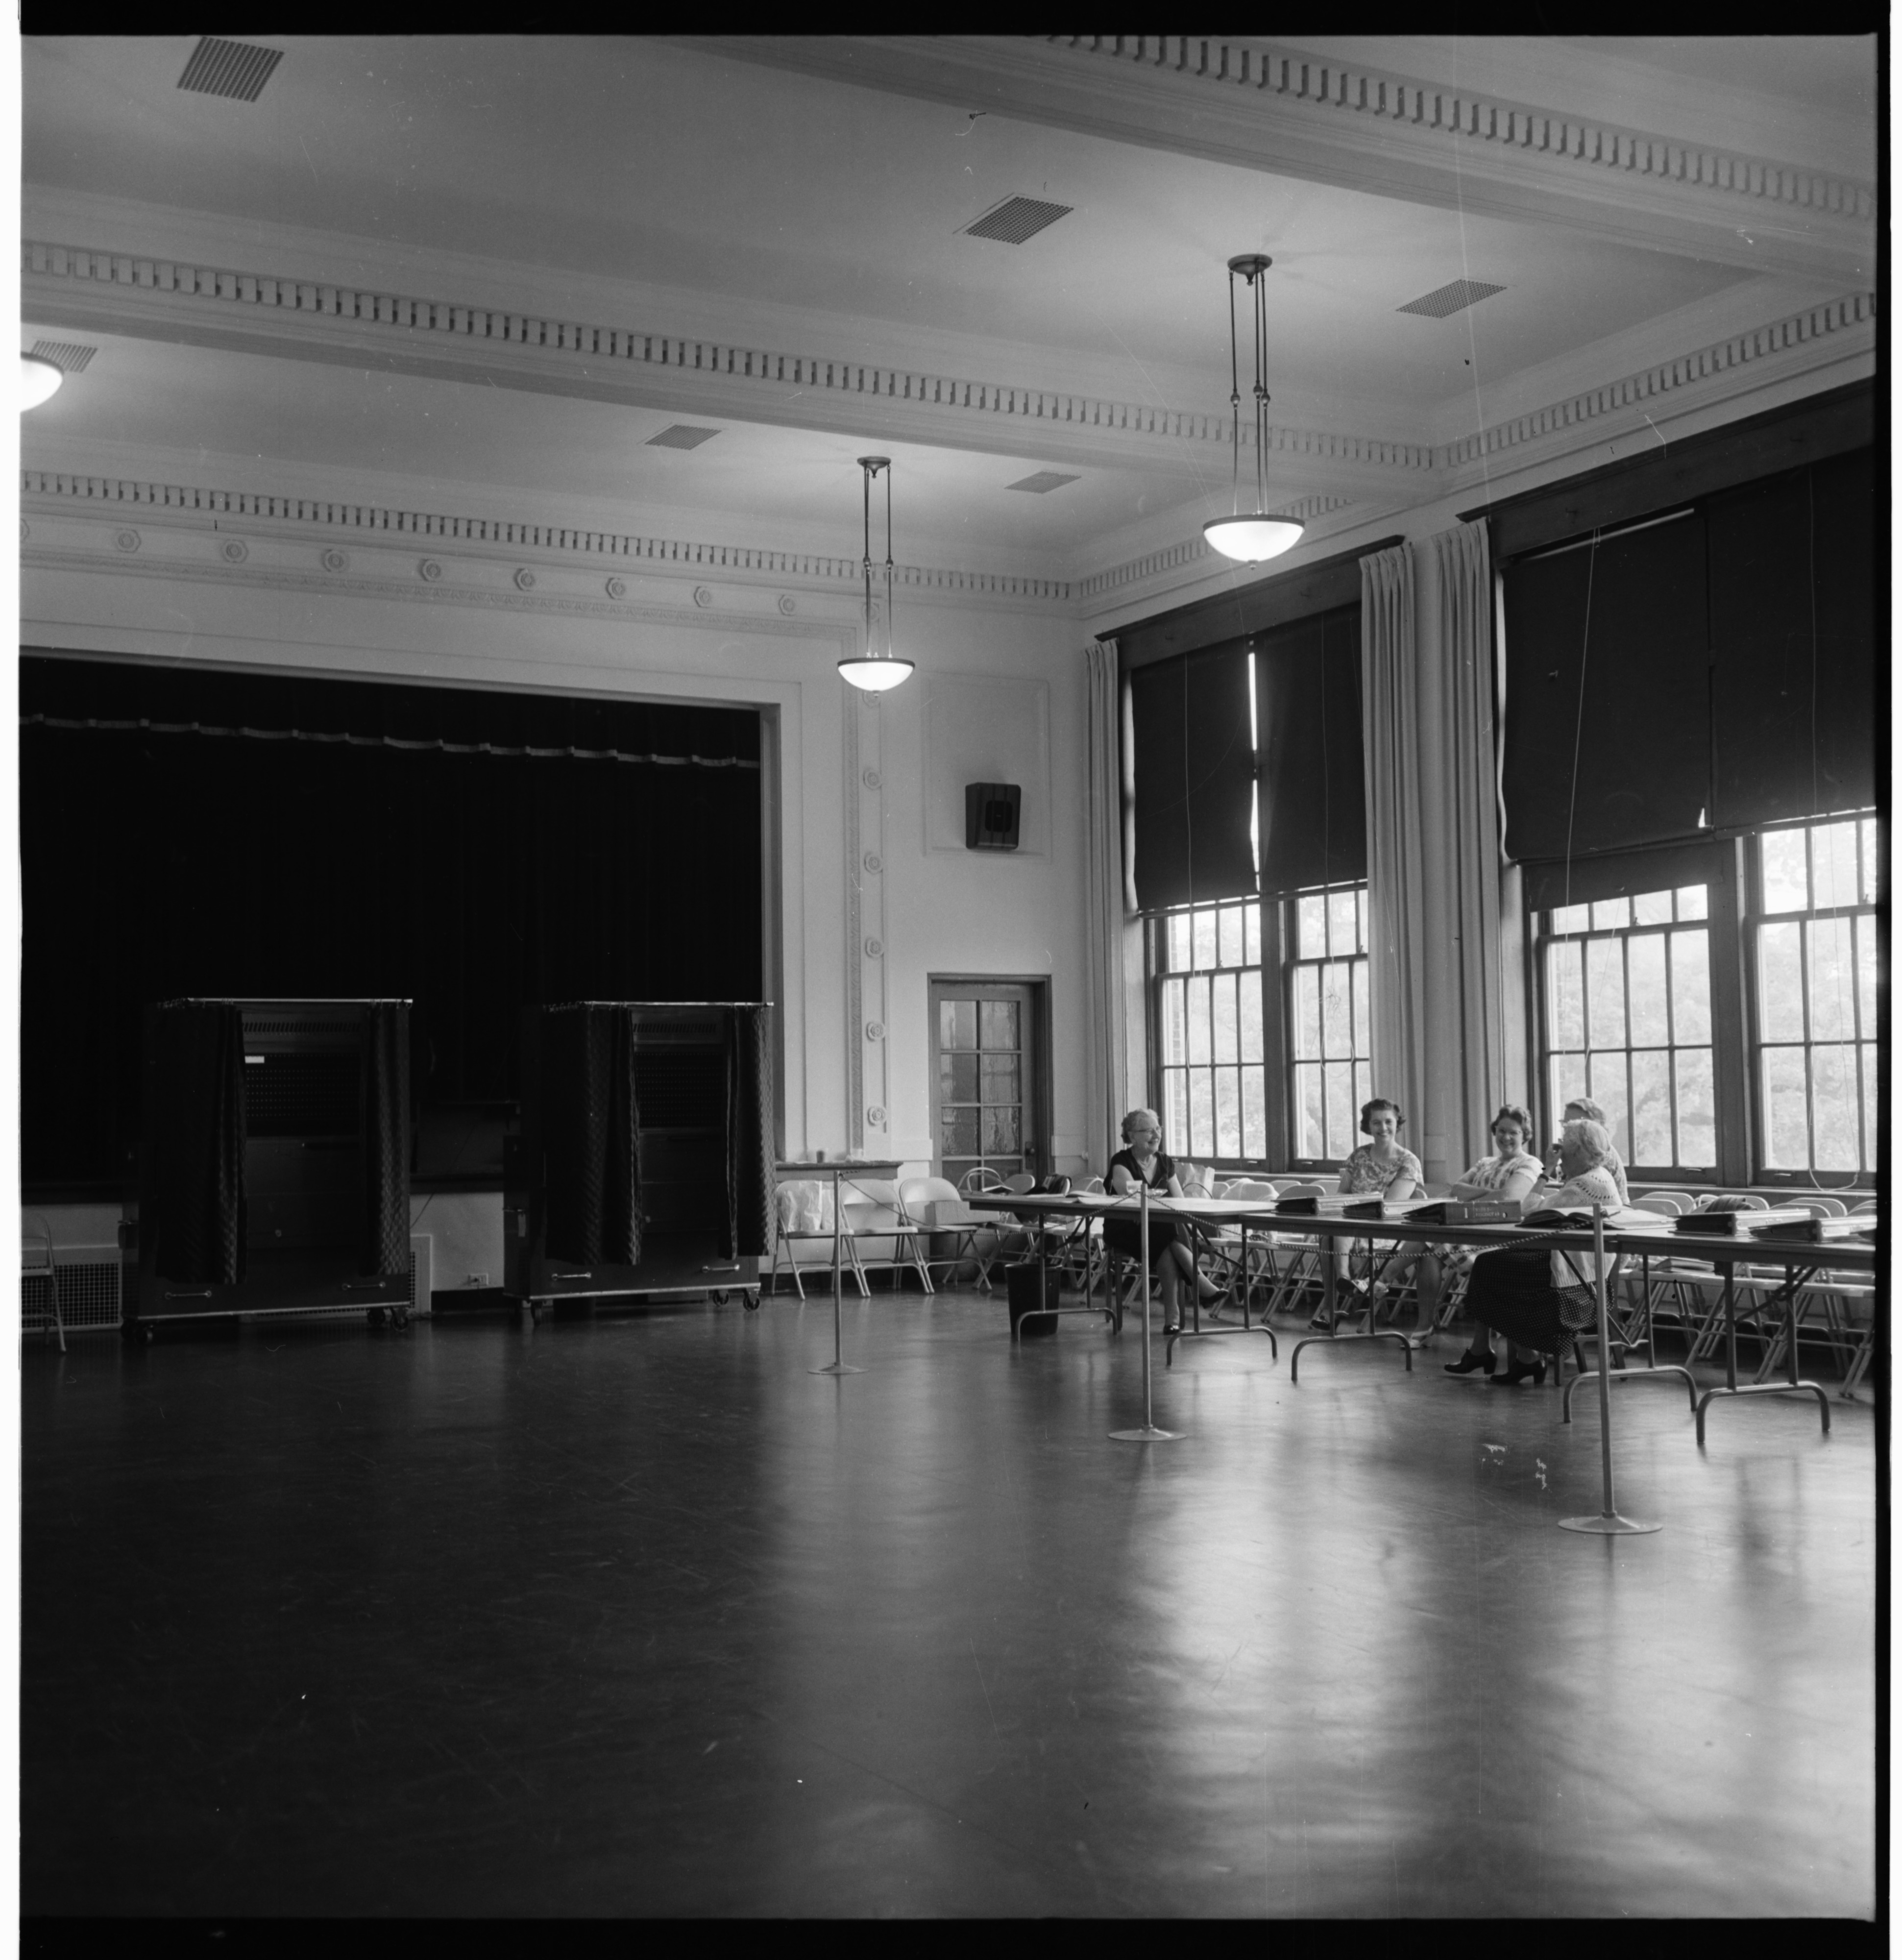 Voting Booths Open for Ann Arbor School Election at Jones School, June 1964 image